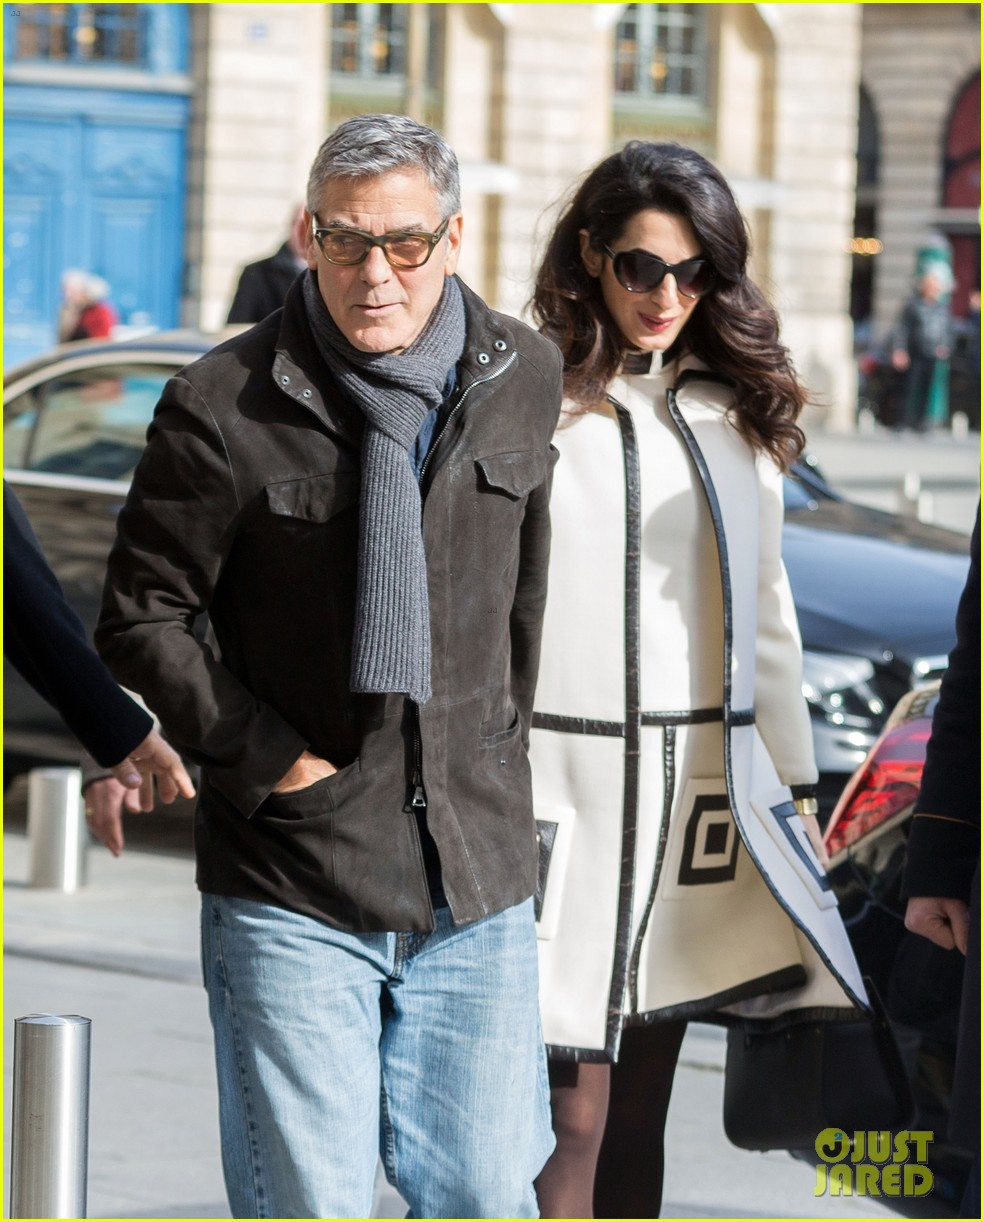 George Clooney & Pregnant Amal Spend a Casual Day in Paris: Photo